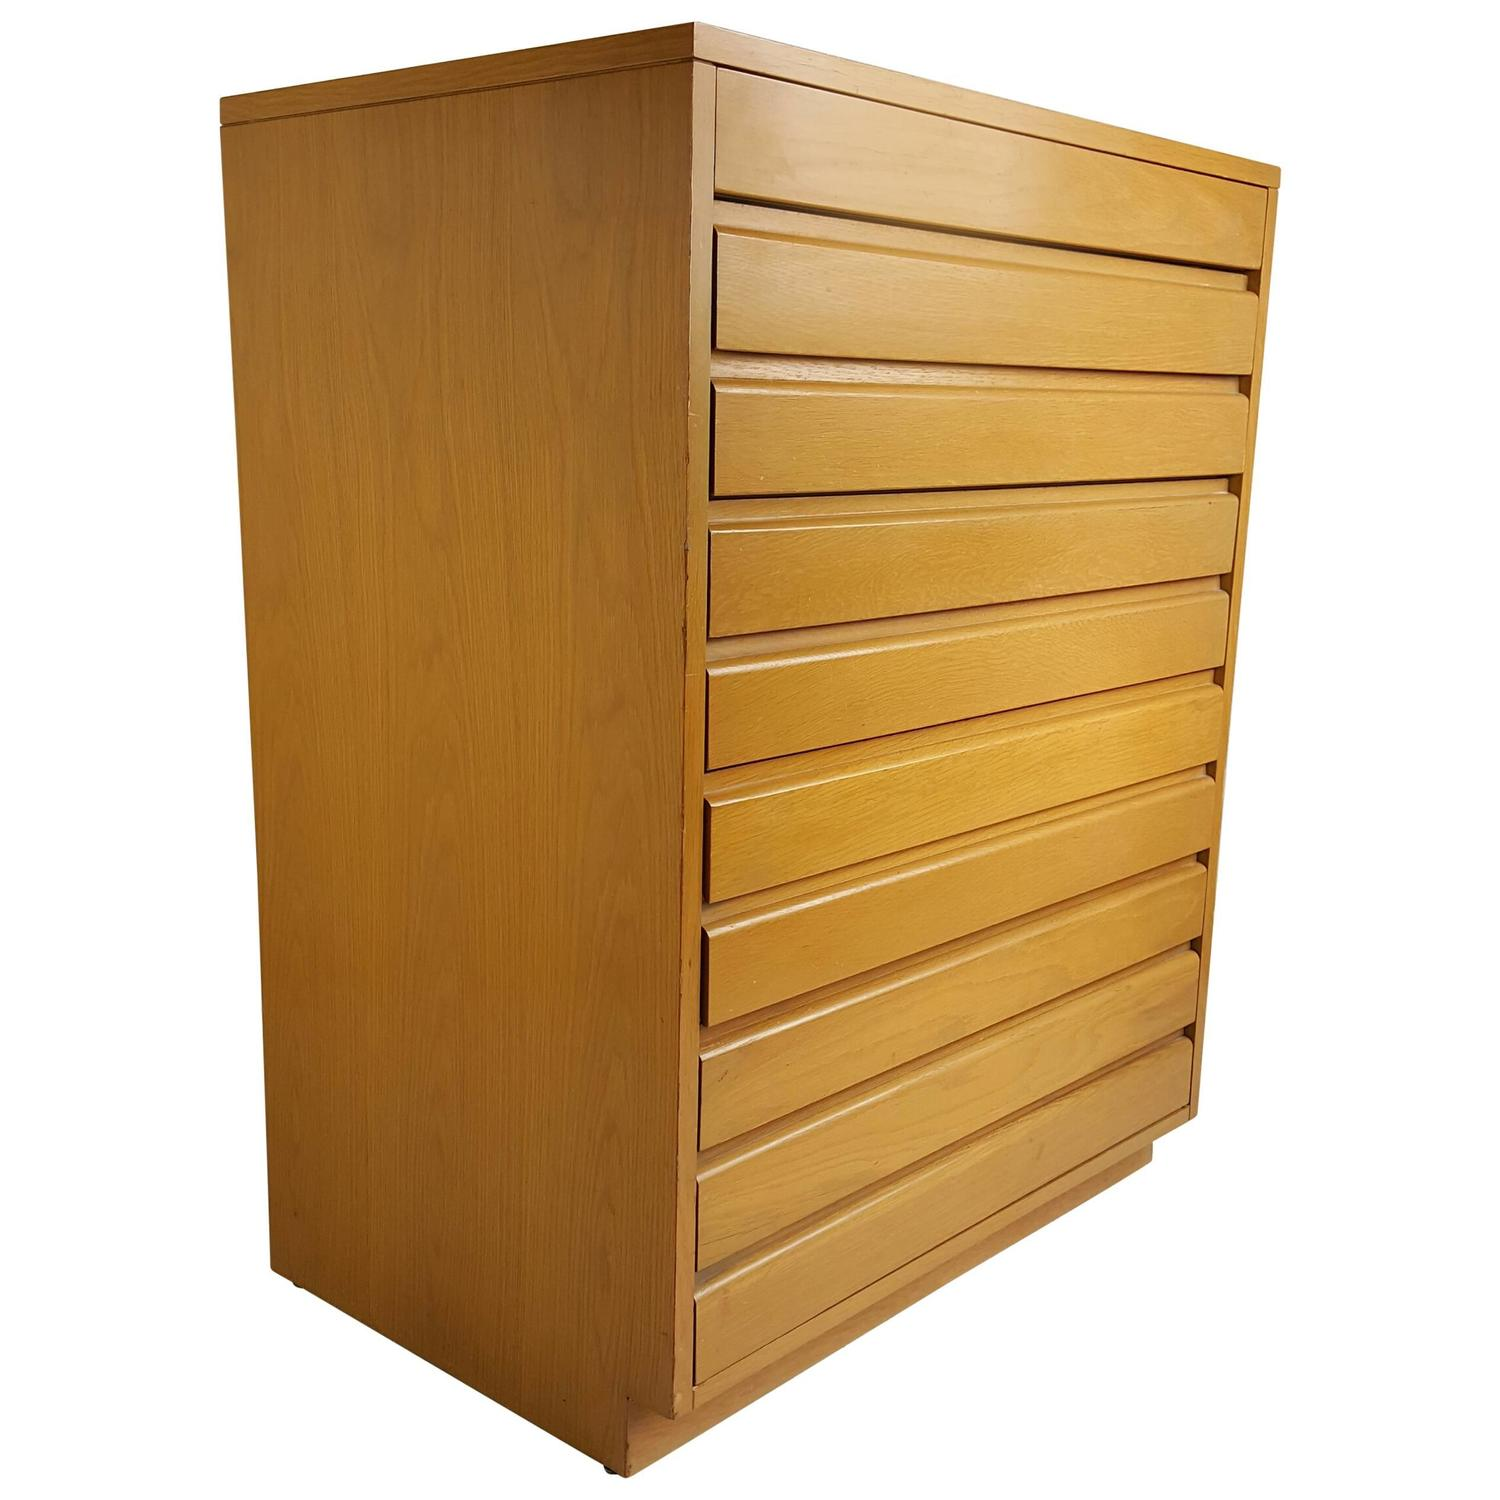 Modernist Five-Drawer Chest of Drawers, Sligh Furniture For Sale at 1stdibs - Modernist Five-Drawer Chest Of Drawers, Sligh Furniture For Sale At